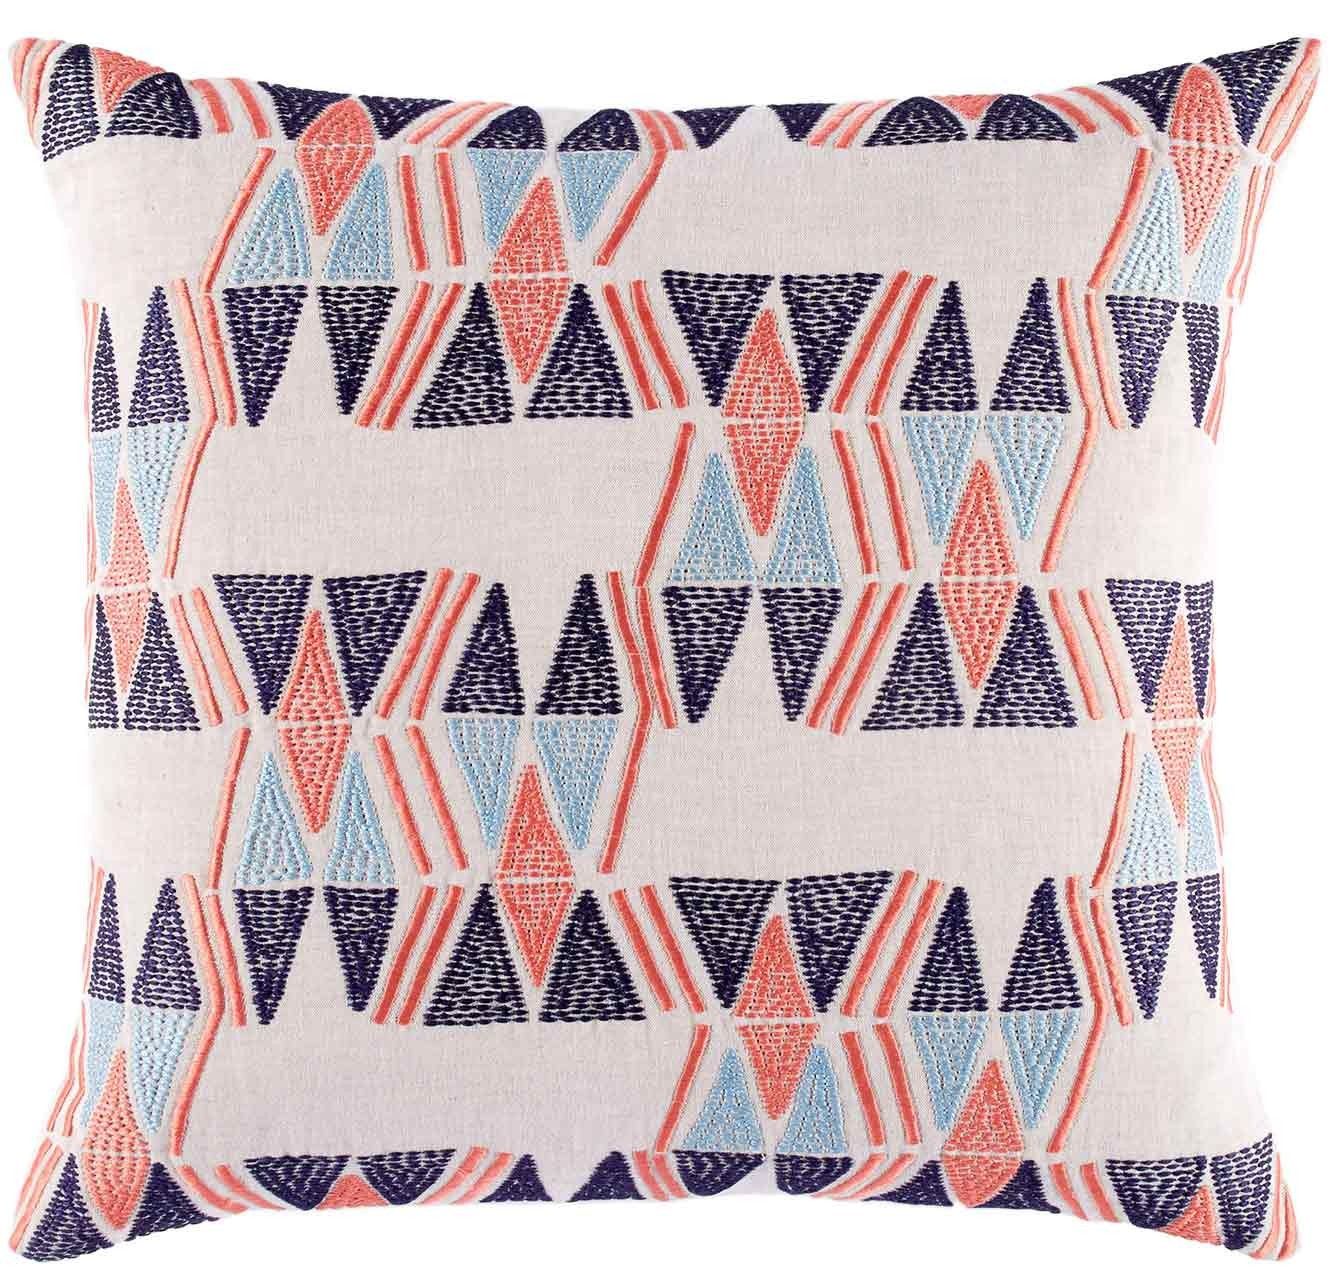 Amusing John Robshaw Pillows for Living Room Accessories Ideas: John Robshaw Pillows | John Robshaw Quilt | Textiles Bedding